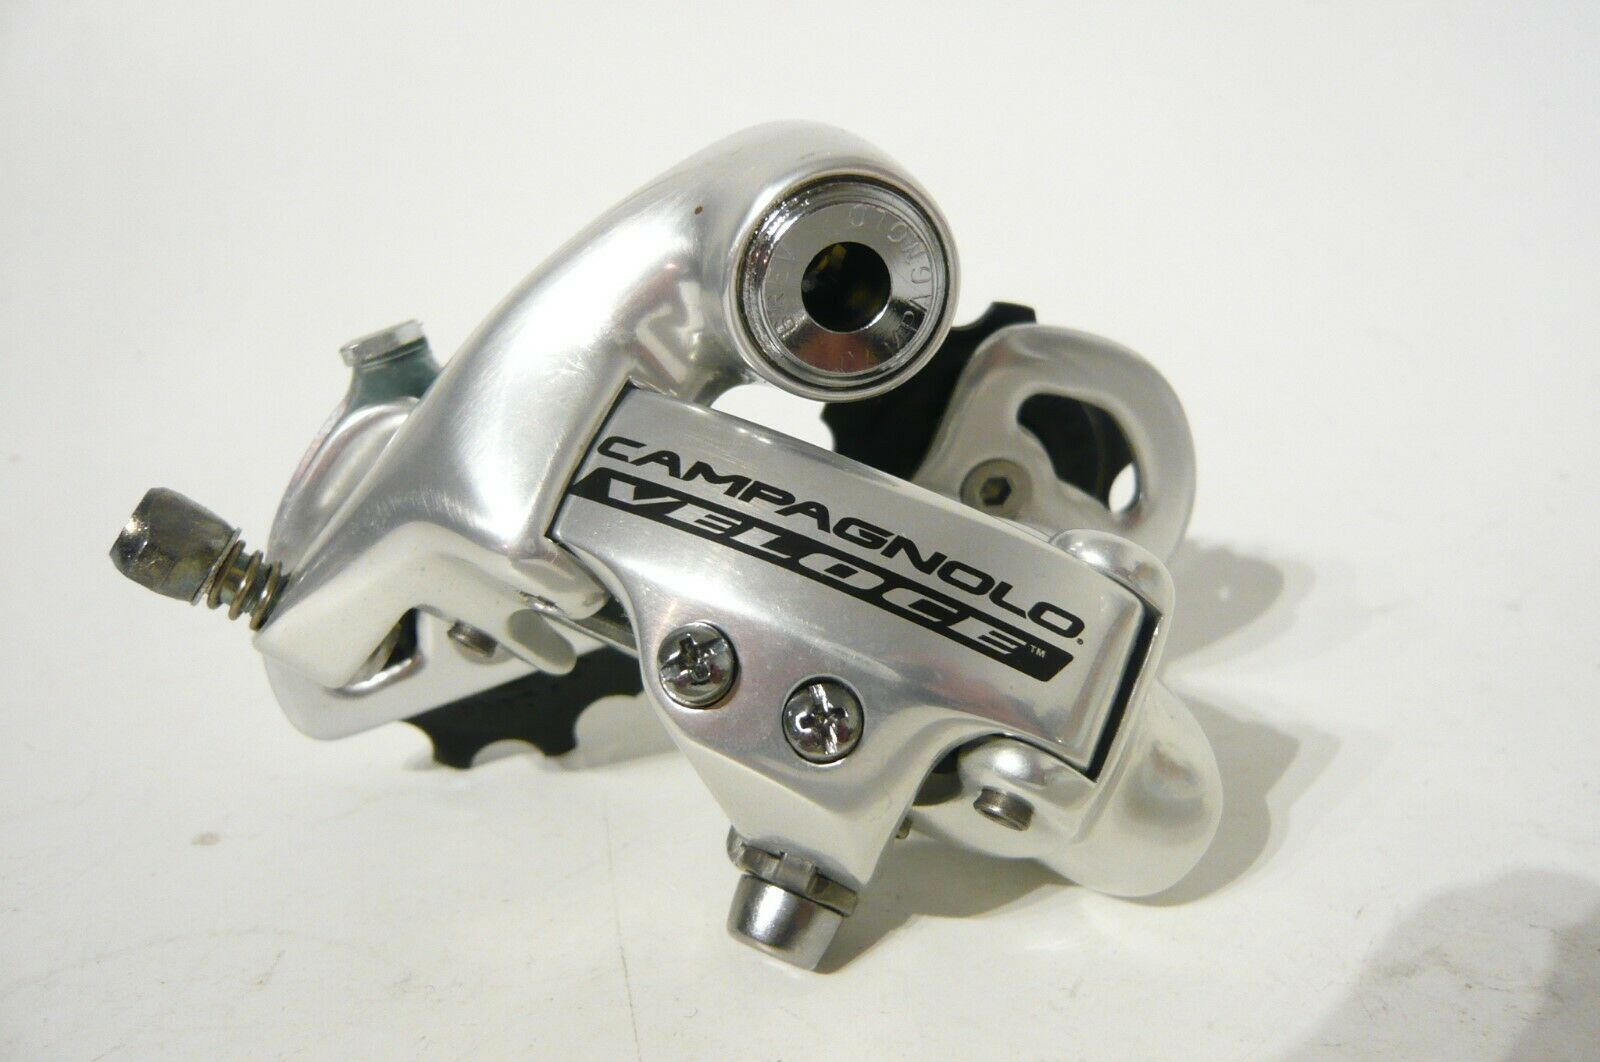 Campagnolo 2007  Veloce short cage 10 speed rear derailleur  all goods are specials